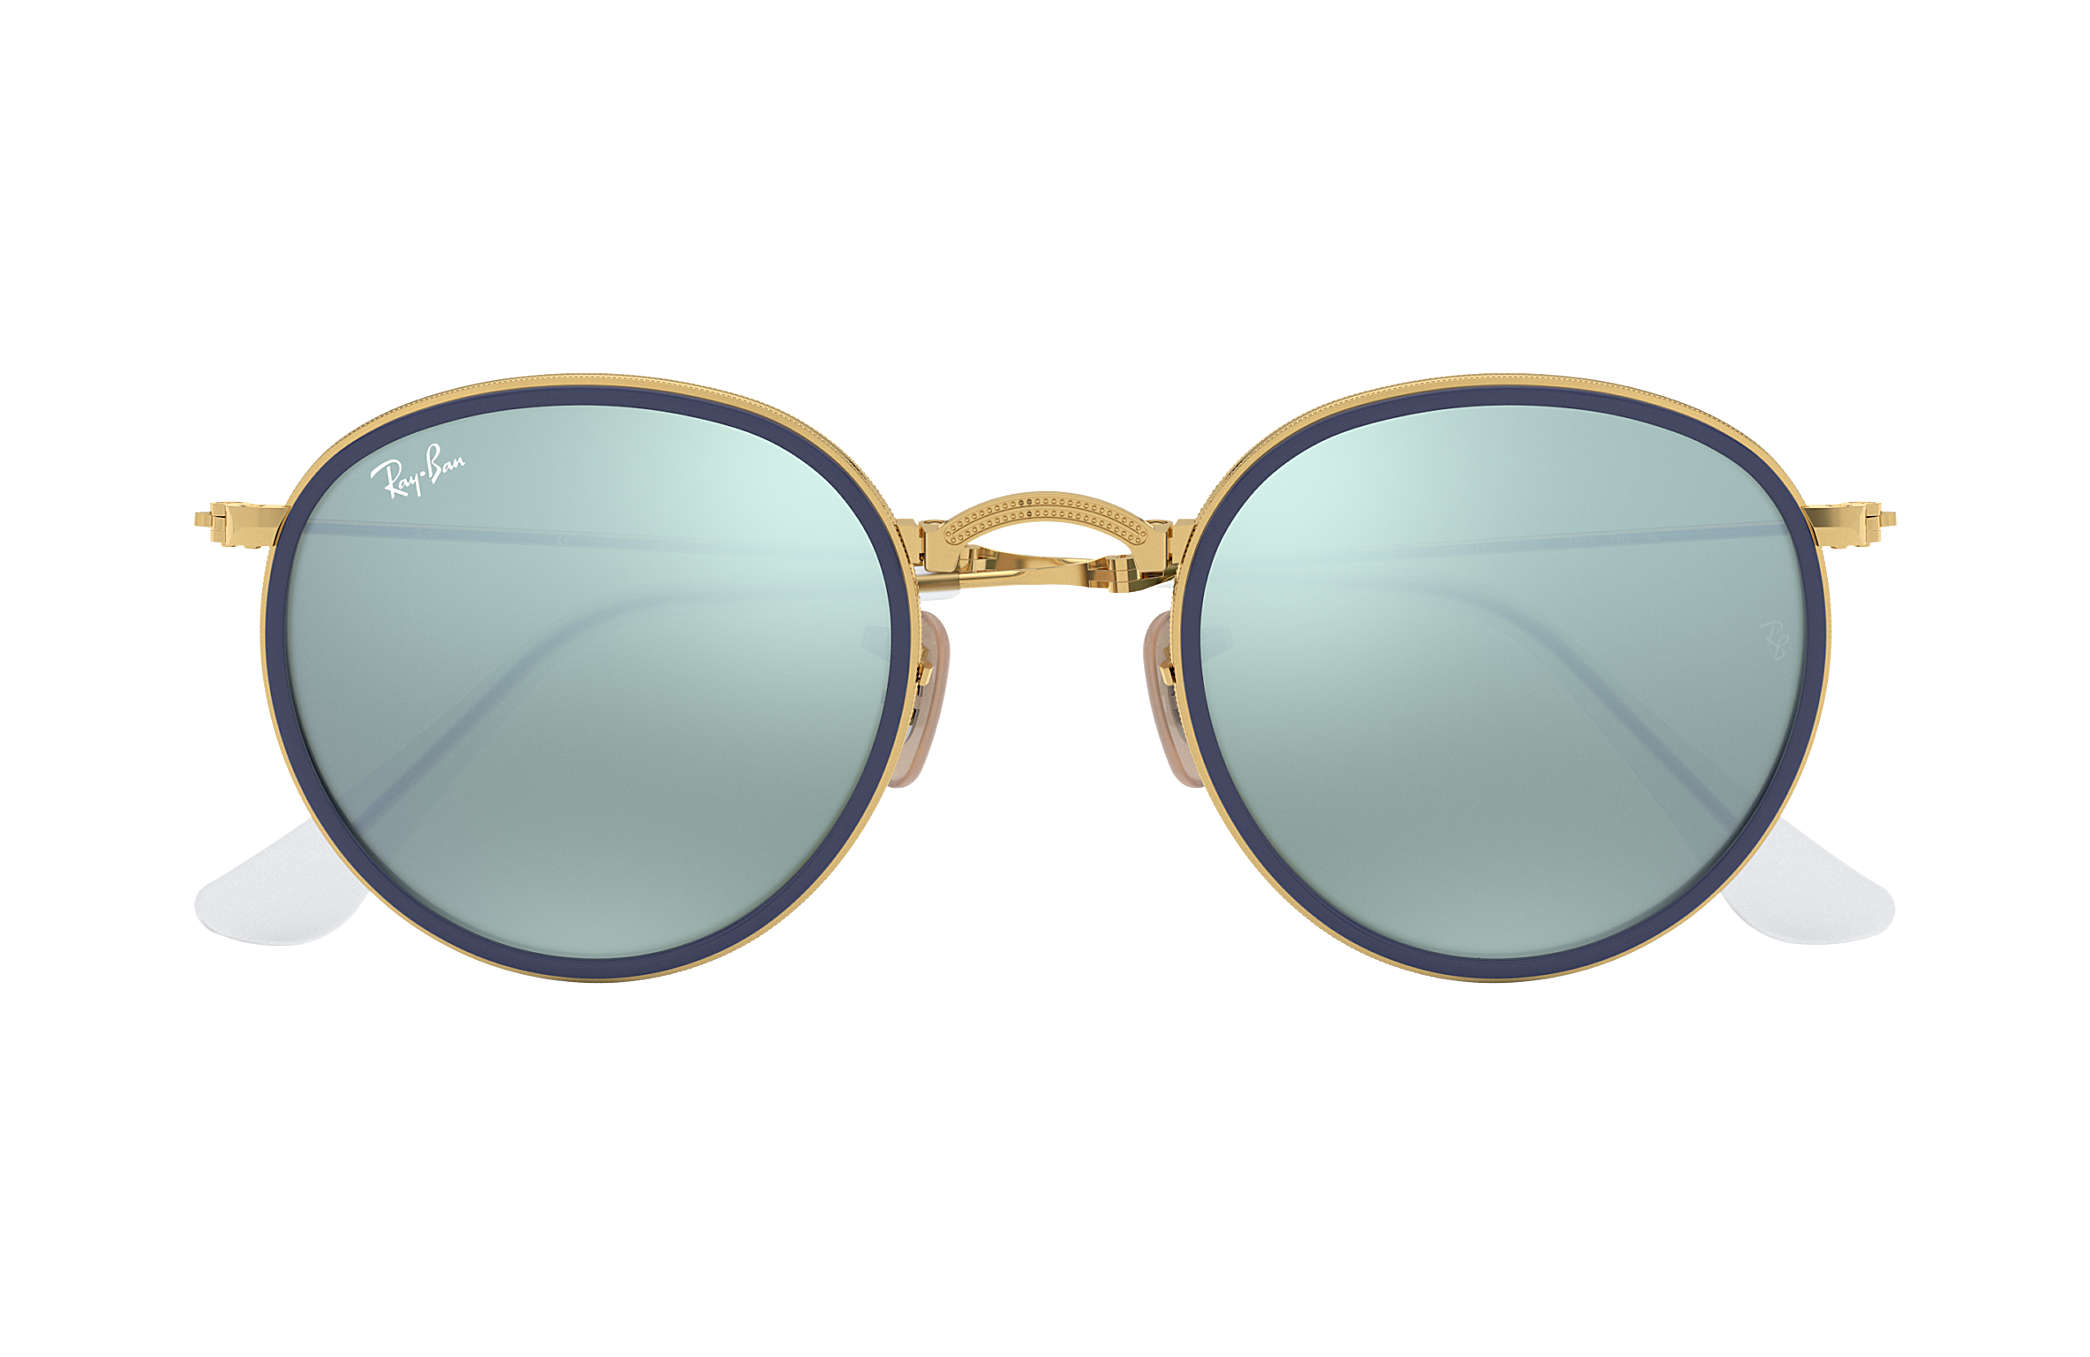 741df8dc964f6 Ray-Ban Round Folding RB3517 Gold - Metal - Silver Lenses ...